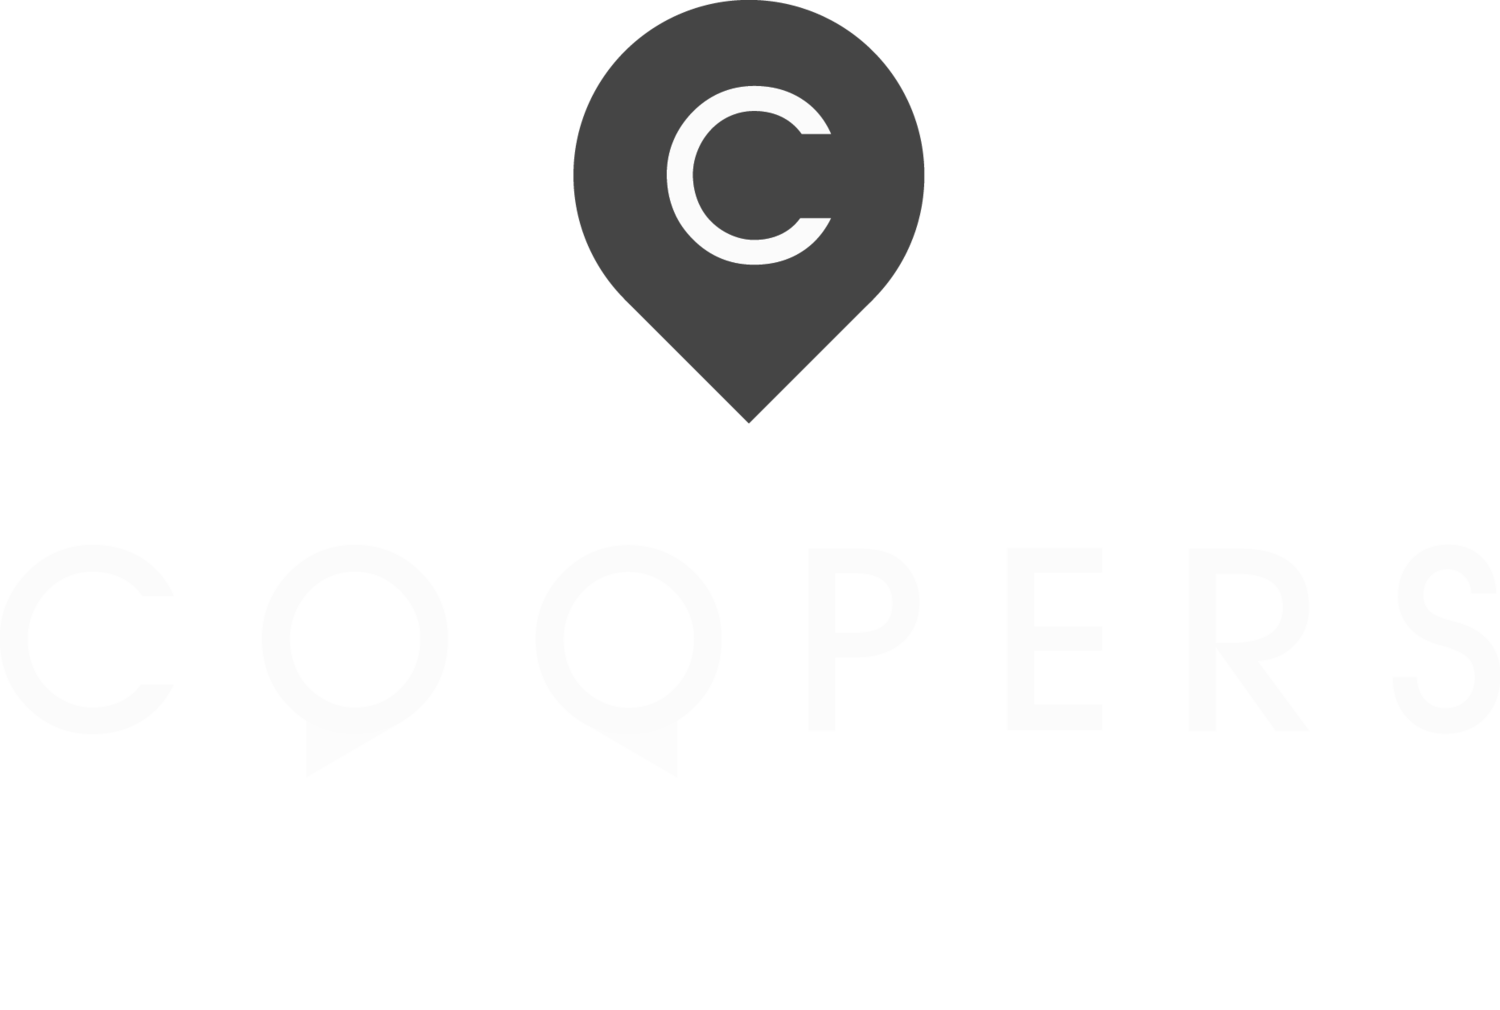 Coopers Digital Production